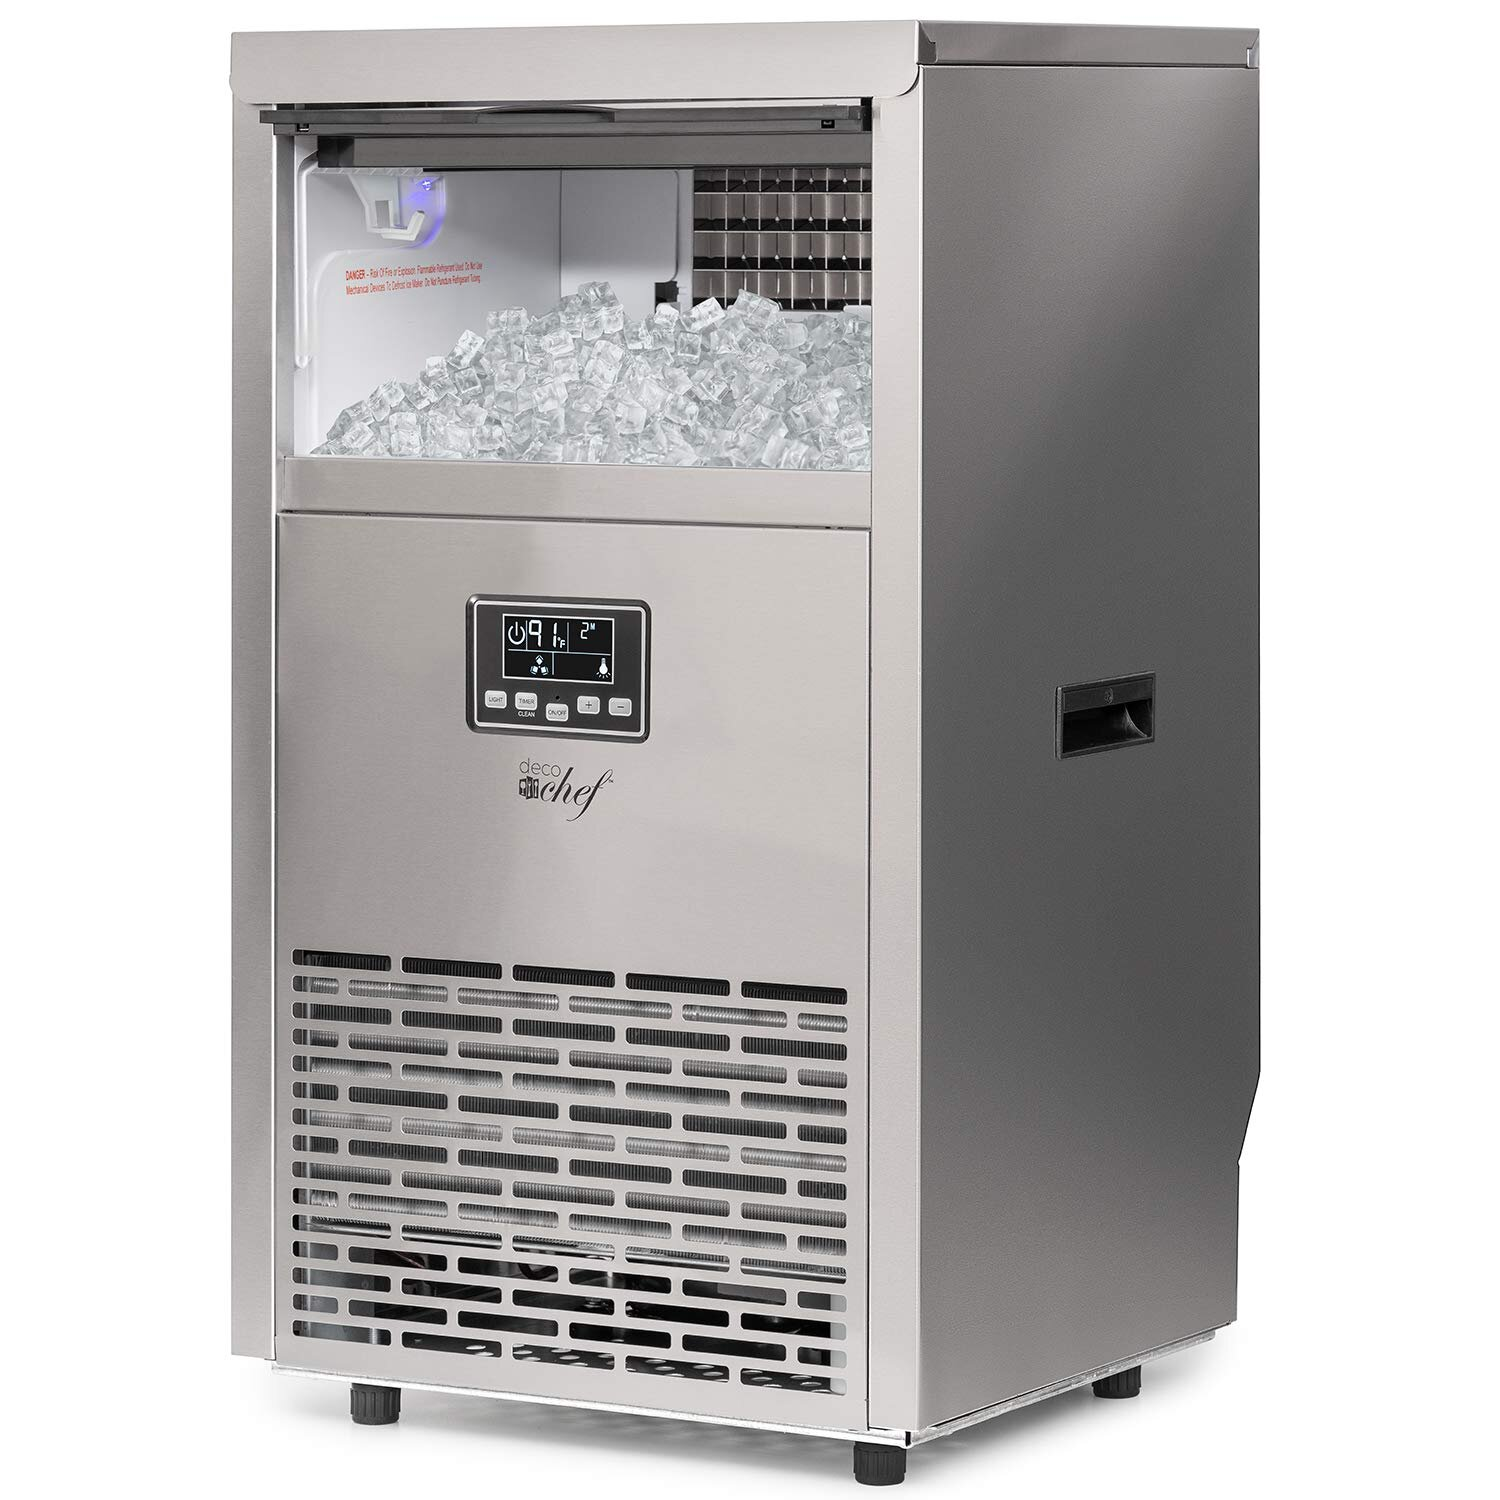 88 LBS//24H Automatic Freestanding Ice Machine Undercounter Bars Includes Scoop and Connection Hose Homes and Offices Joy Pebble Commercial Ice Maker Ideal for Restaurants